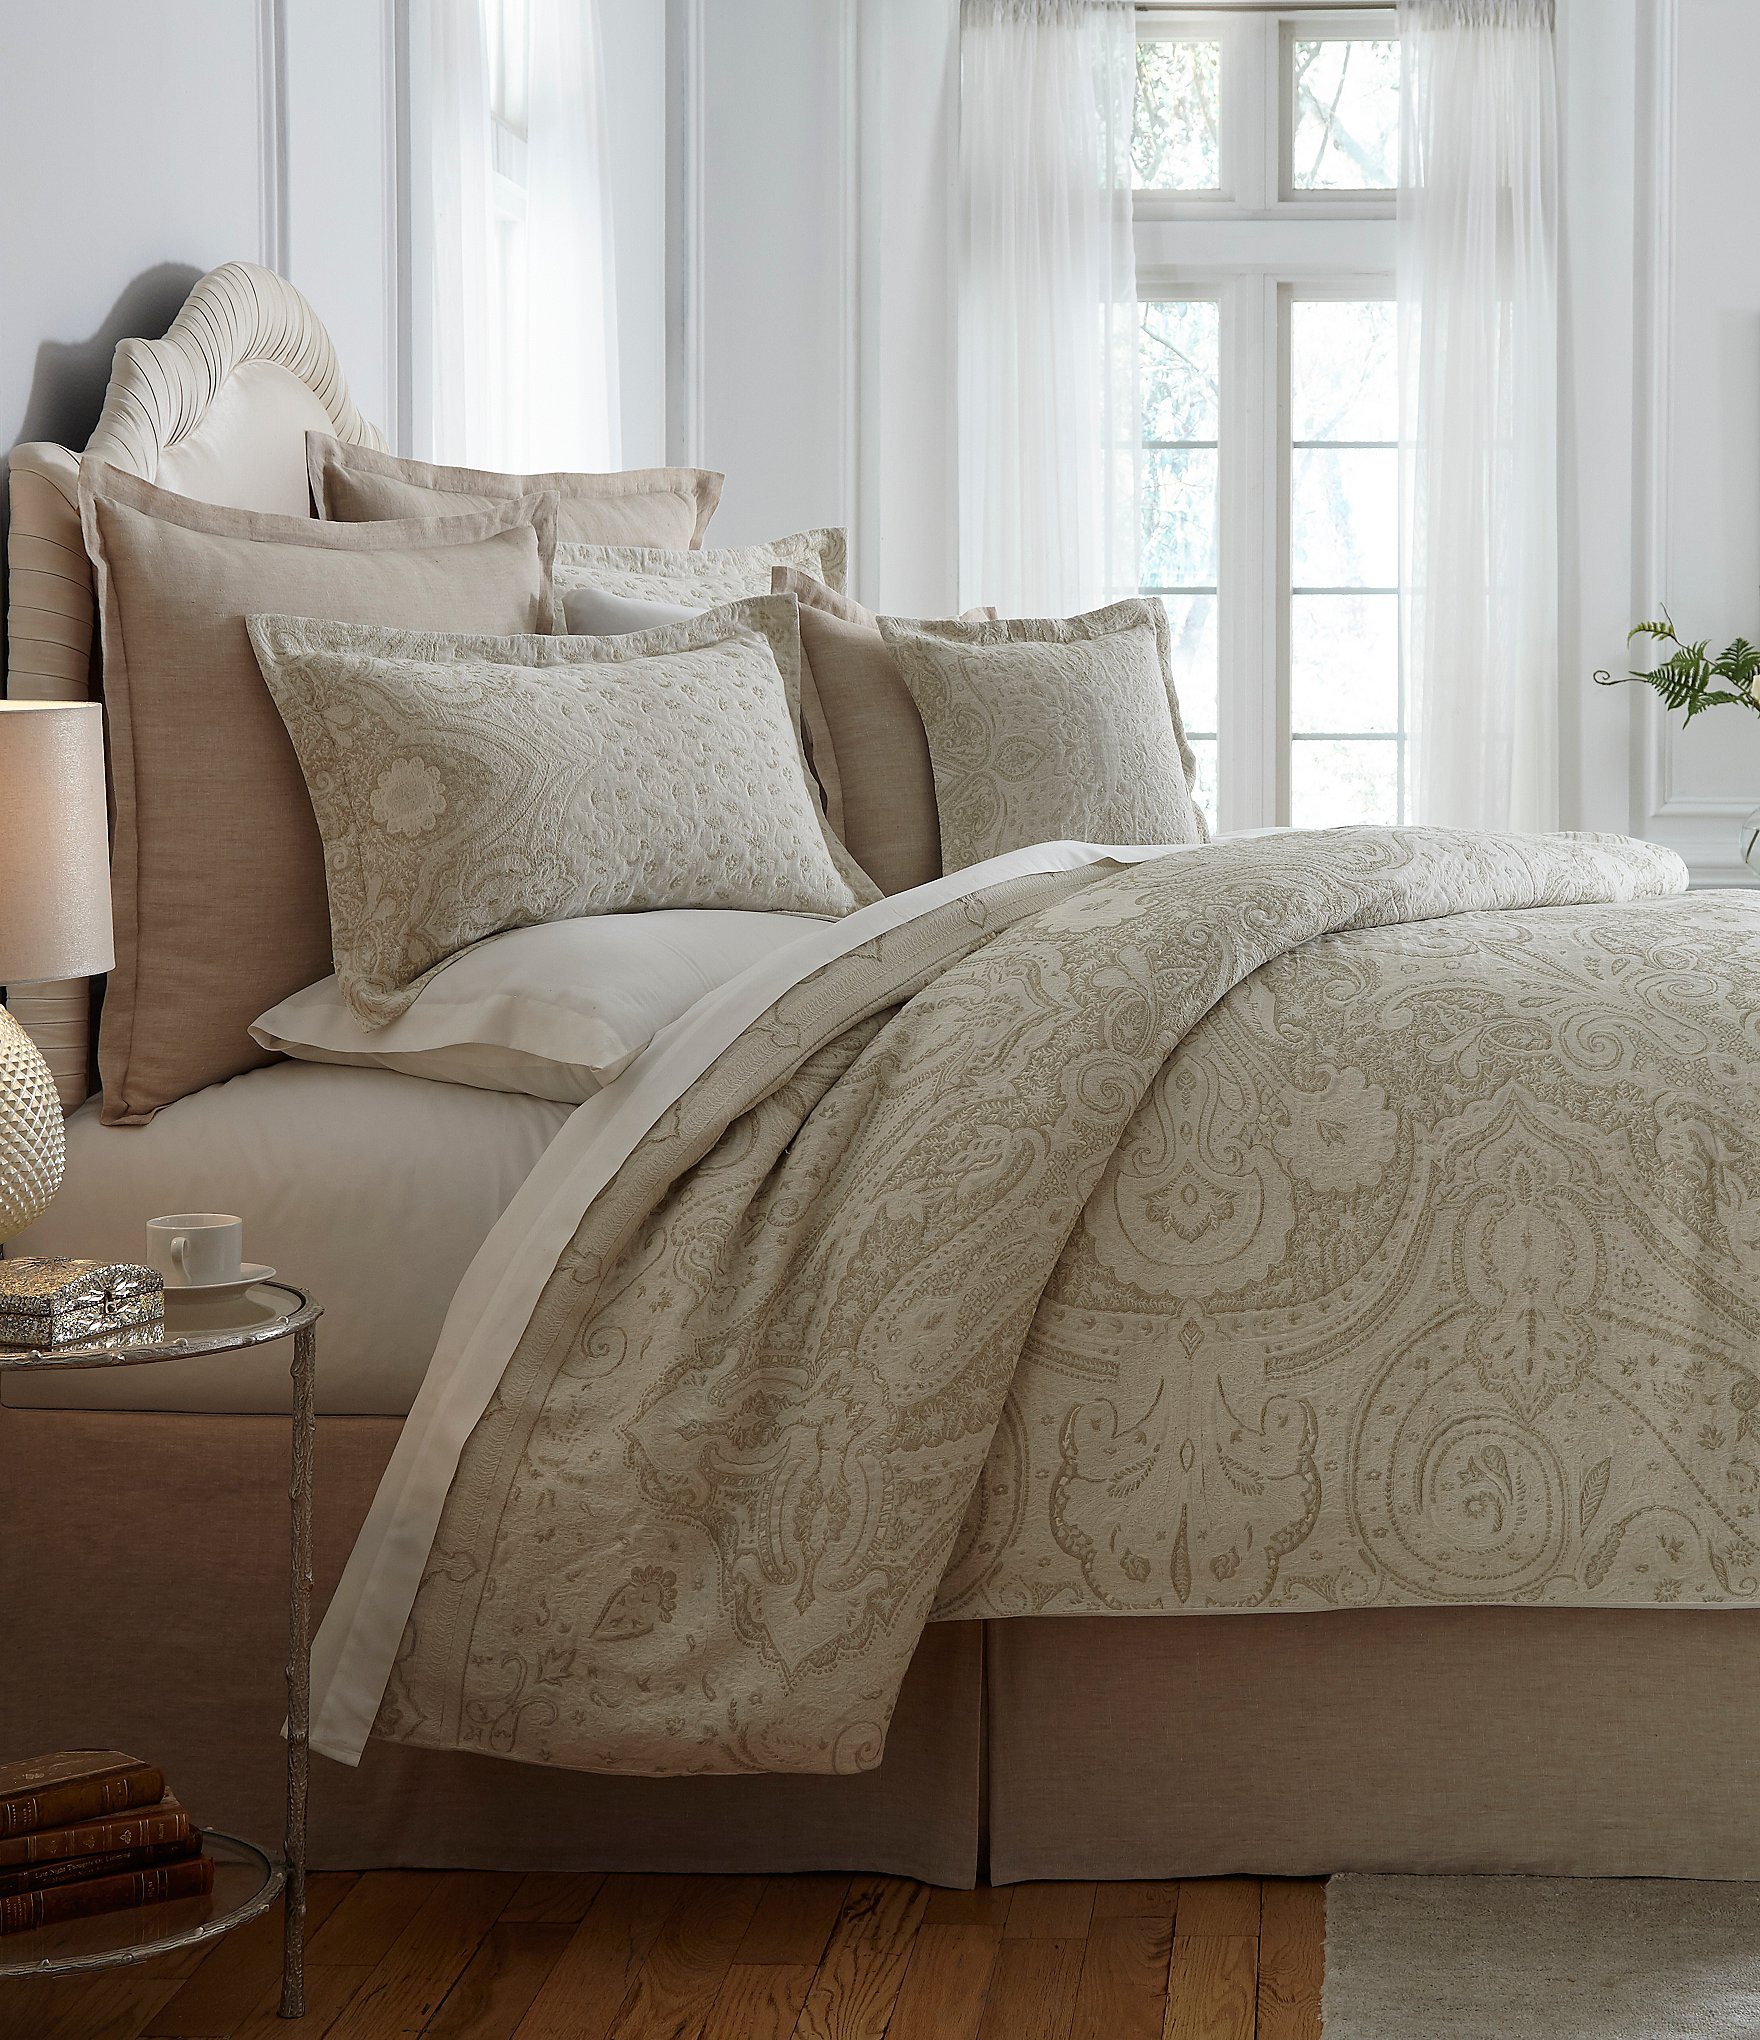 southern living bedding & bedding collections| dillards